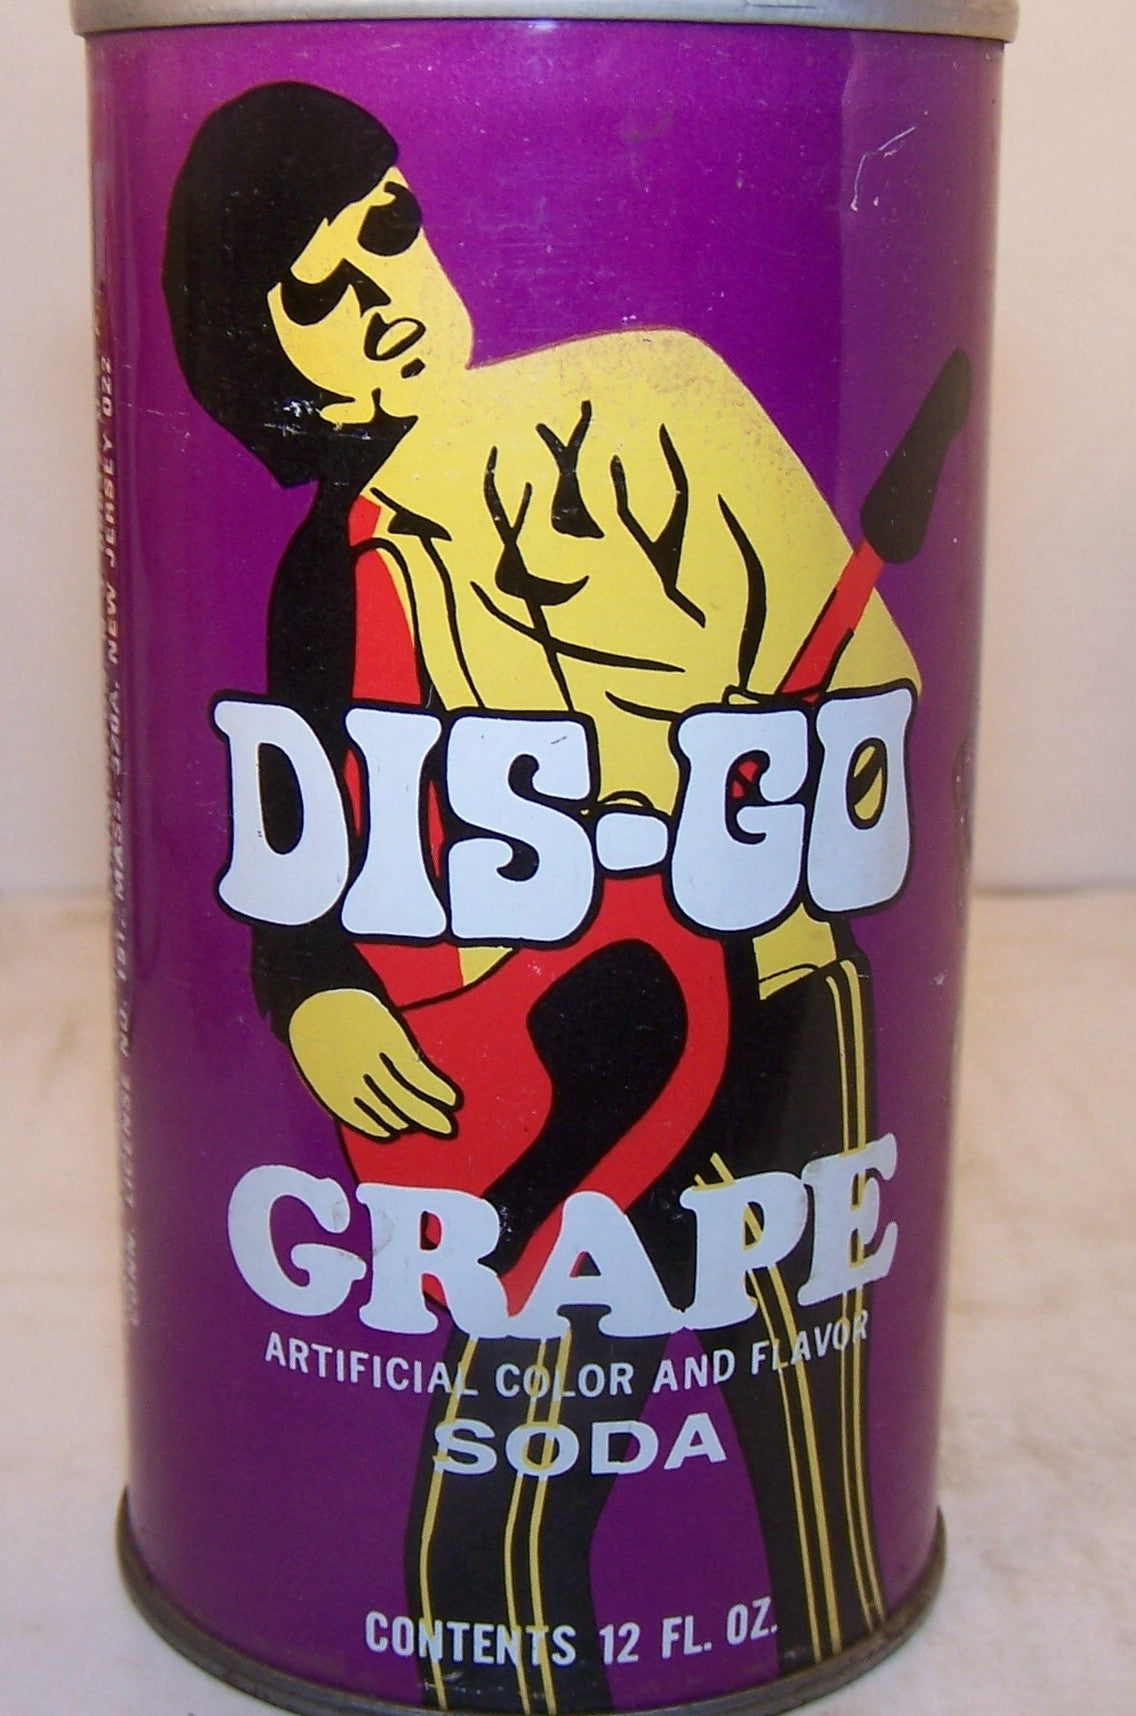 DIS-GO Grape soda, 2007 soda book page # 147, Grade 1/1+ Sold on 11/18/14